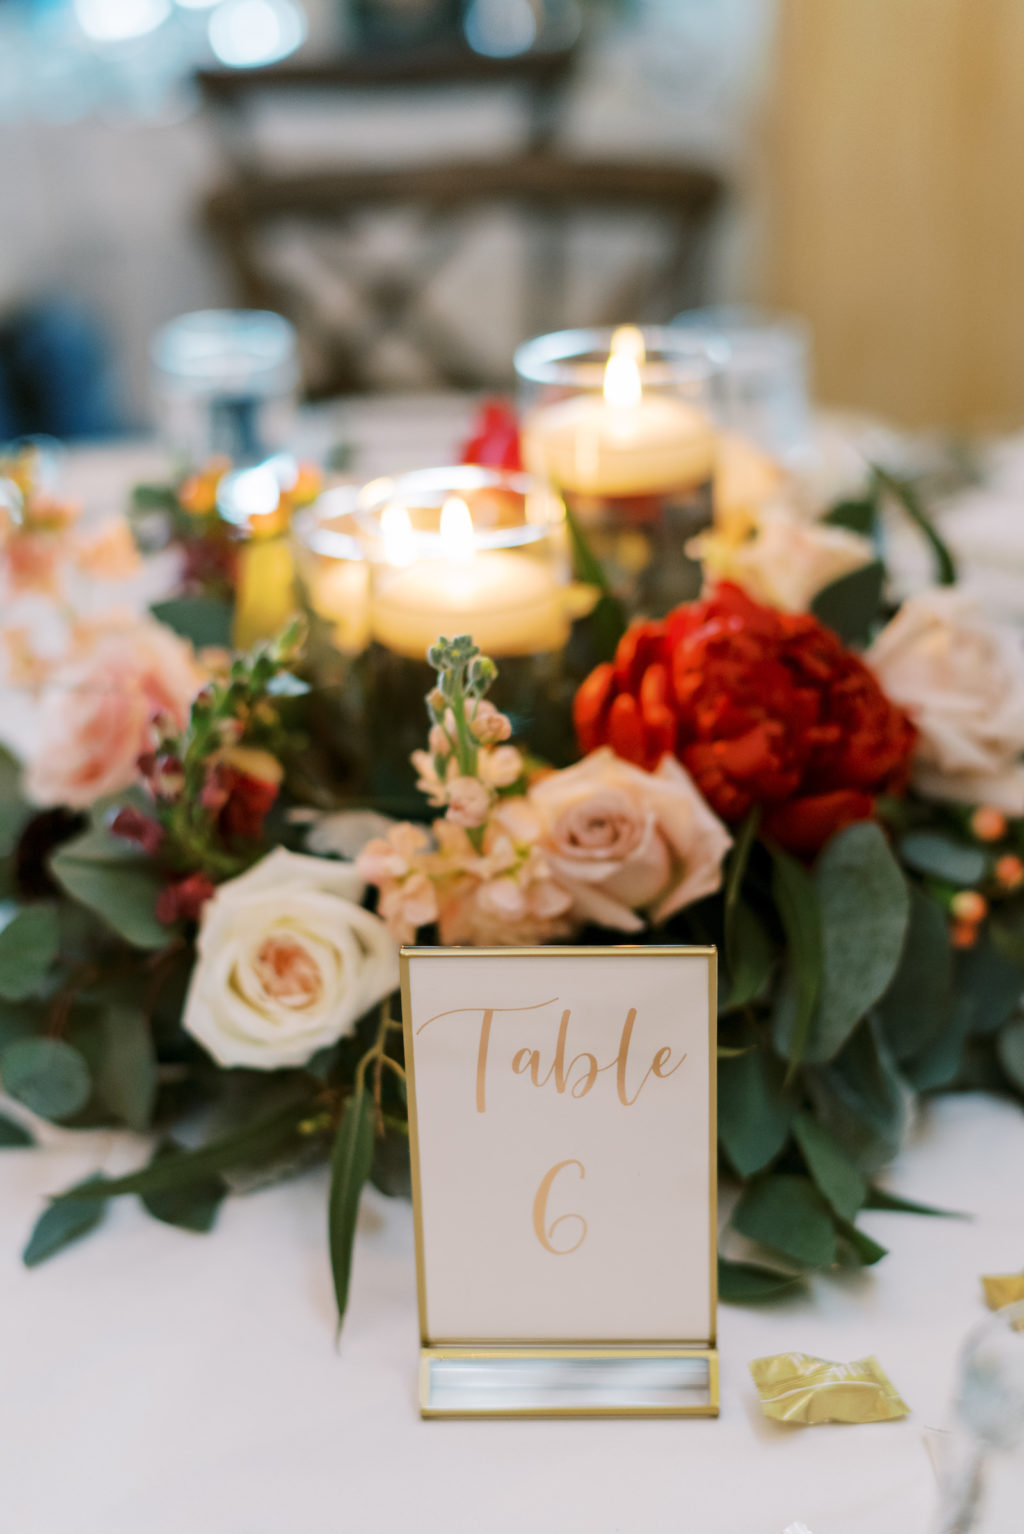 Rustic Romantic Wedding Reception Decor, Low Blush Pink, Ivory, Red Florals and Greenery Wreath Centerpiece with Candles, Gold Table Number Signage   Tampa Bay Wedding Rentals A Chair Affair